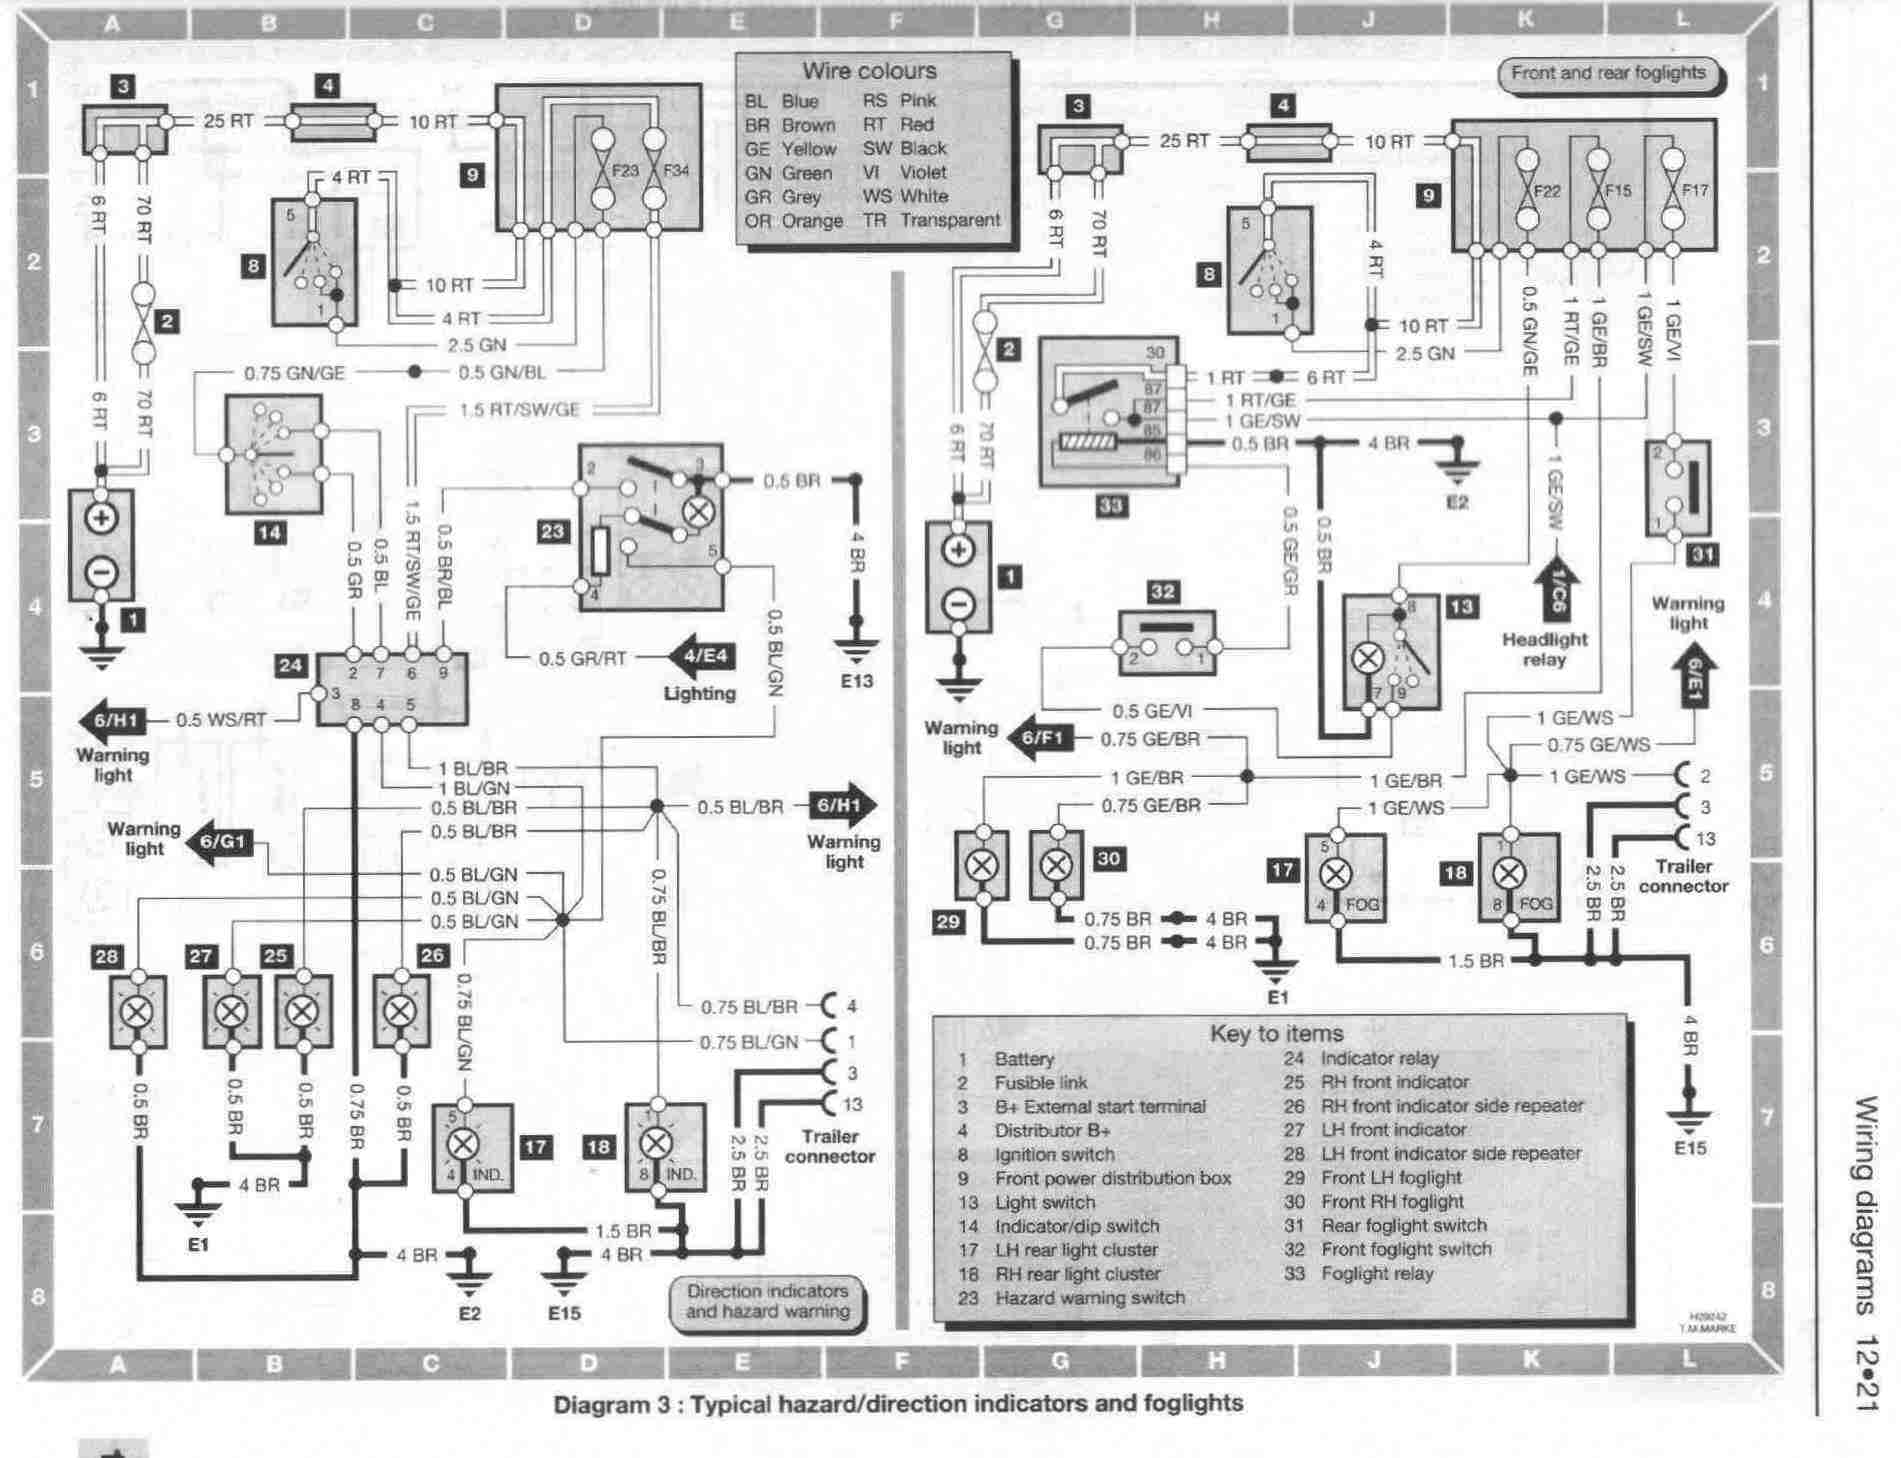 foglamp wiring wiring diagram for international 656 the wiring diagram ih wiring diagrams at mifinder.co